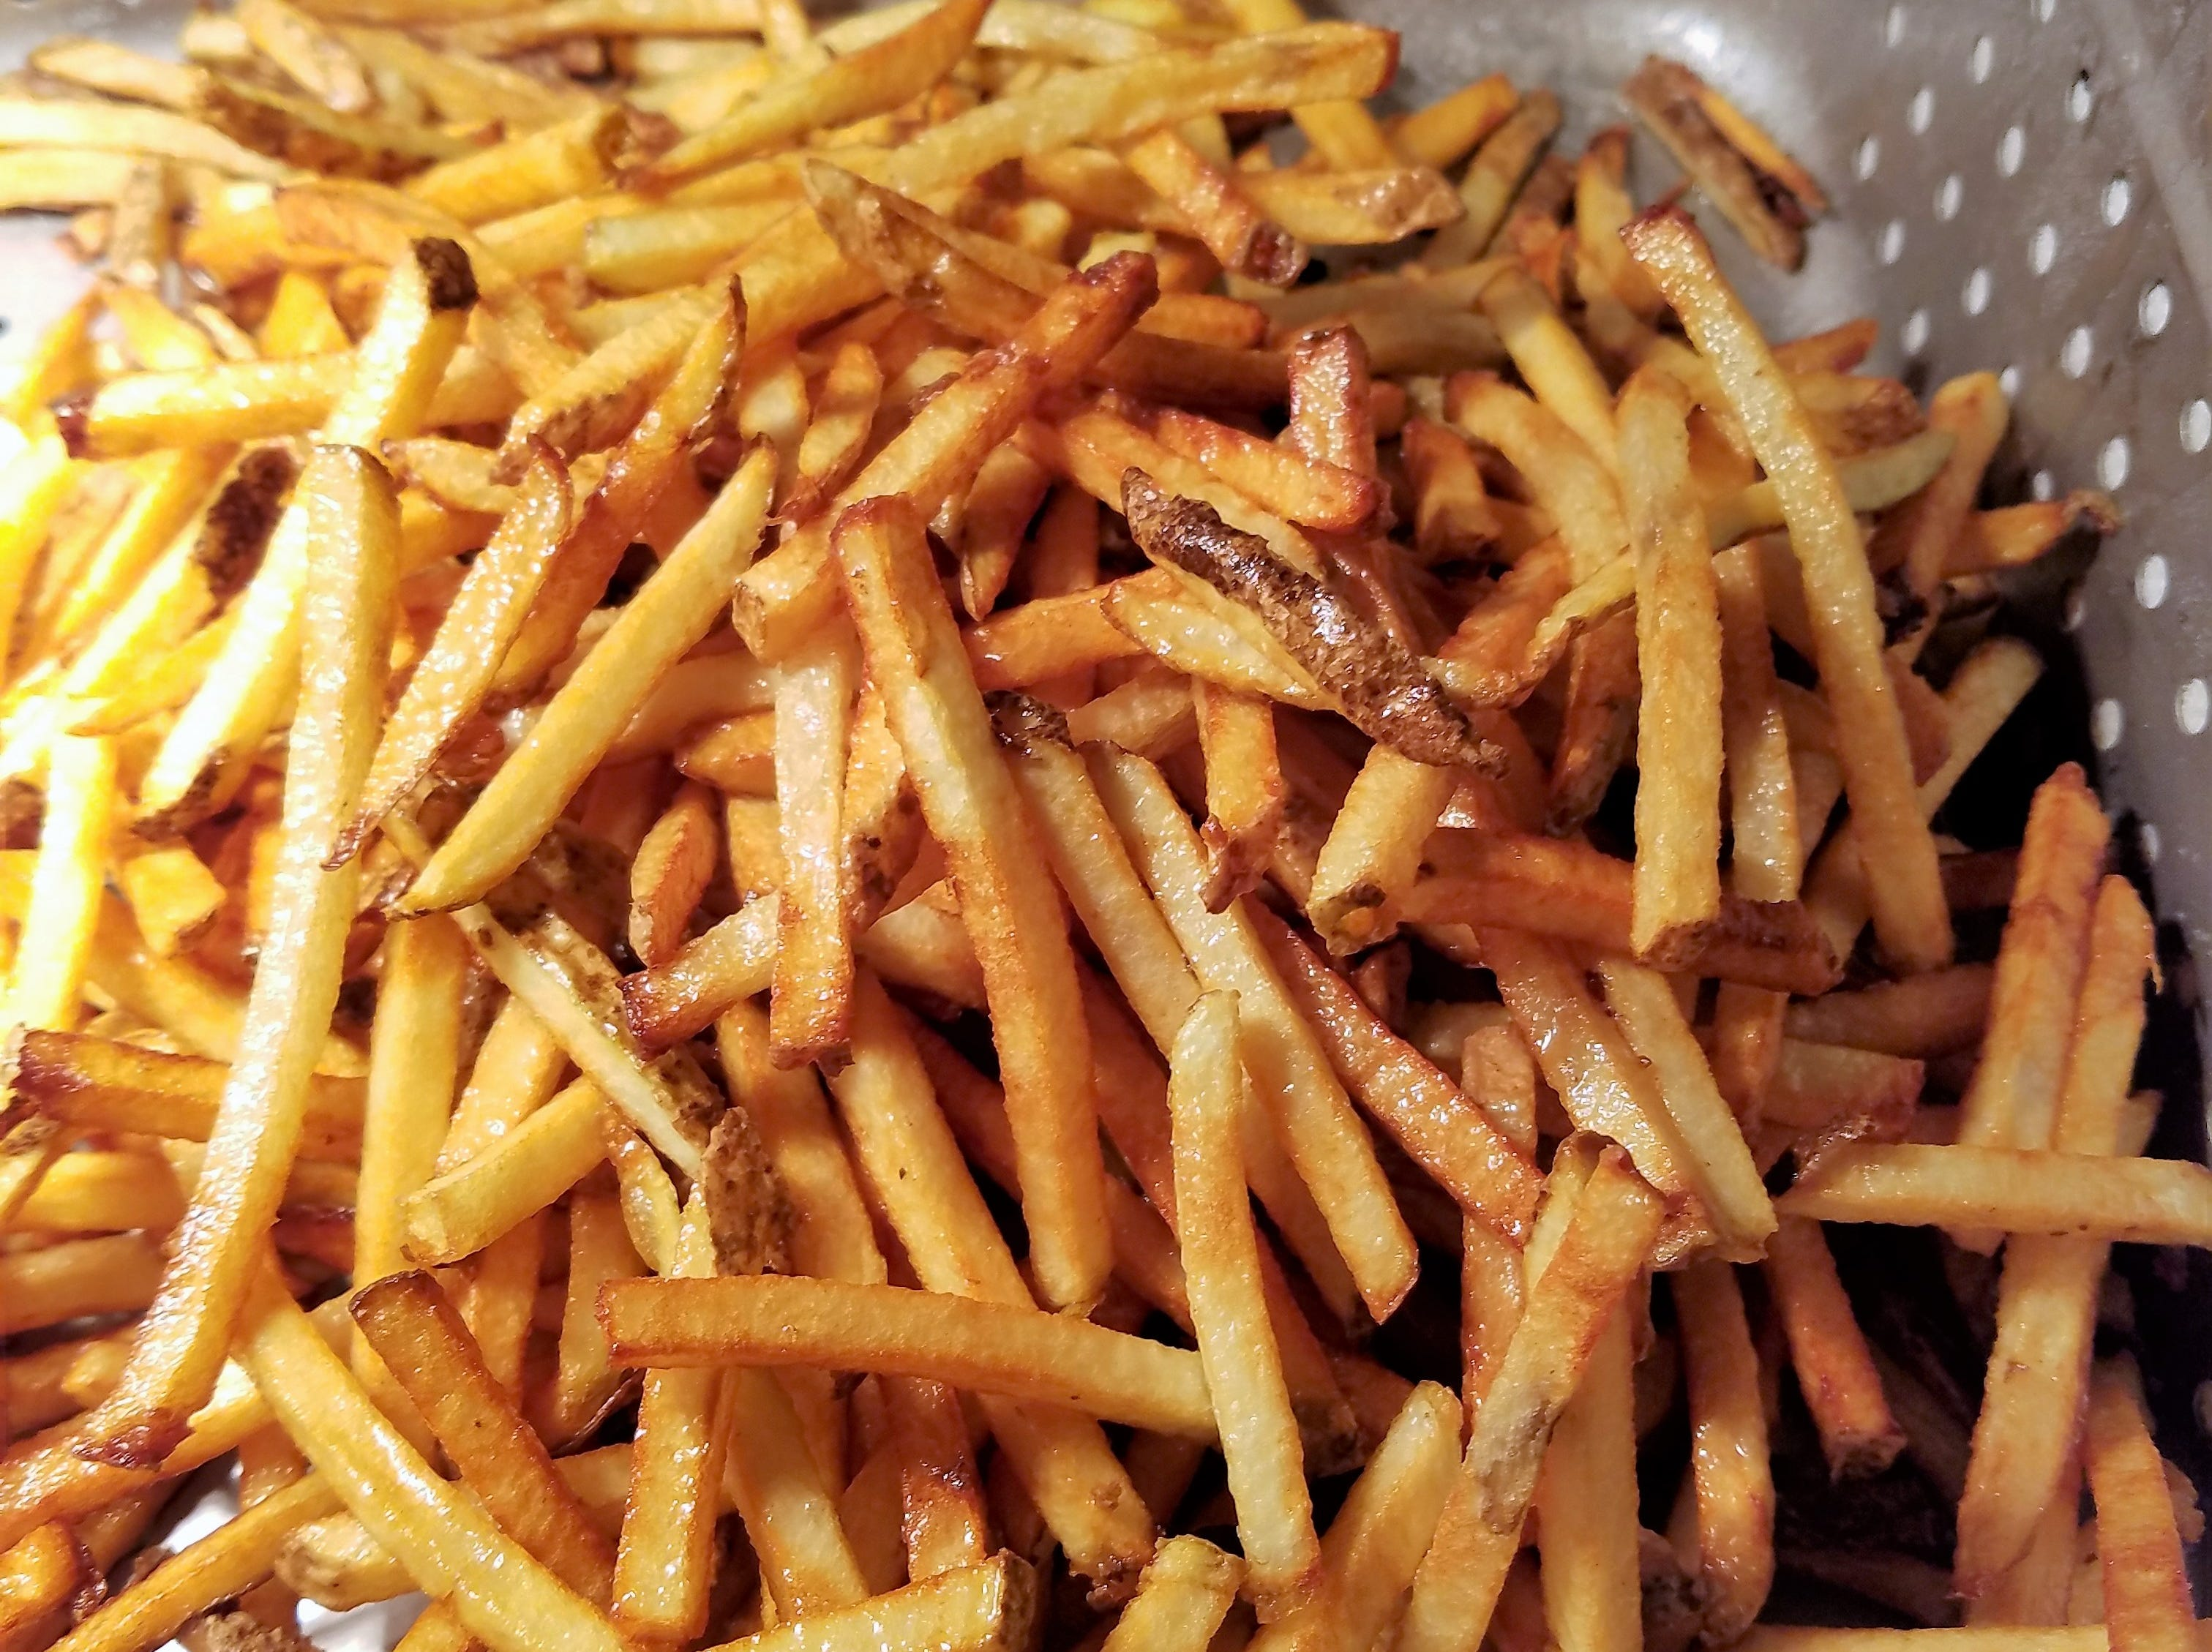 Crisp, twice-fried, fresh cut fries at Cool Cat's Me So Hangry Grill.